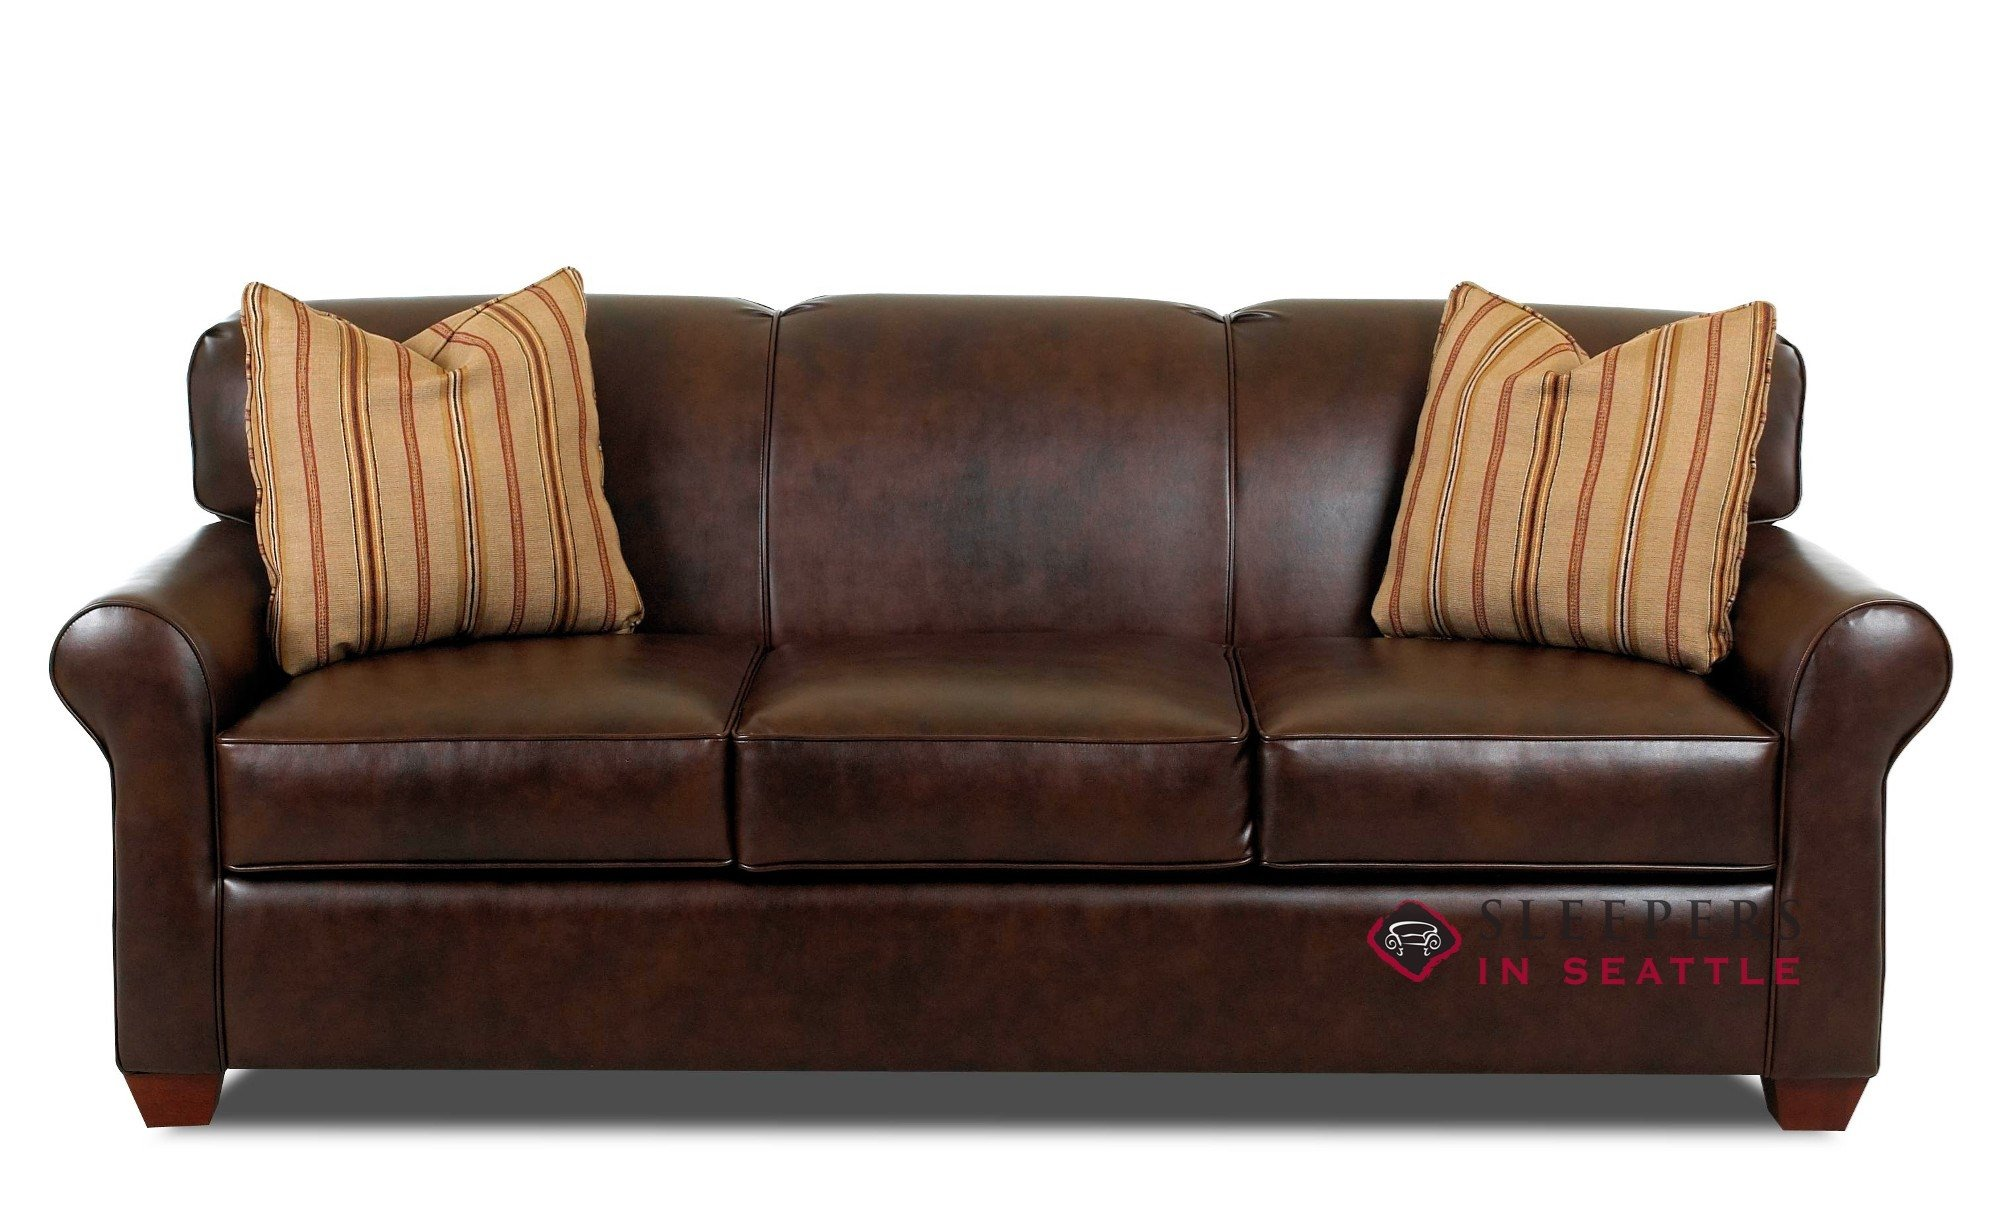 Leather Sleeper Sofa Customize And Personalize Po B883 Queen Leather Sofa By Natuzzi Thesofa